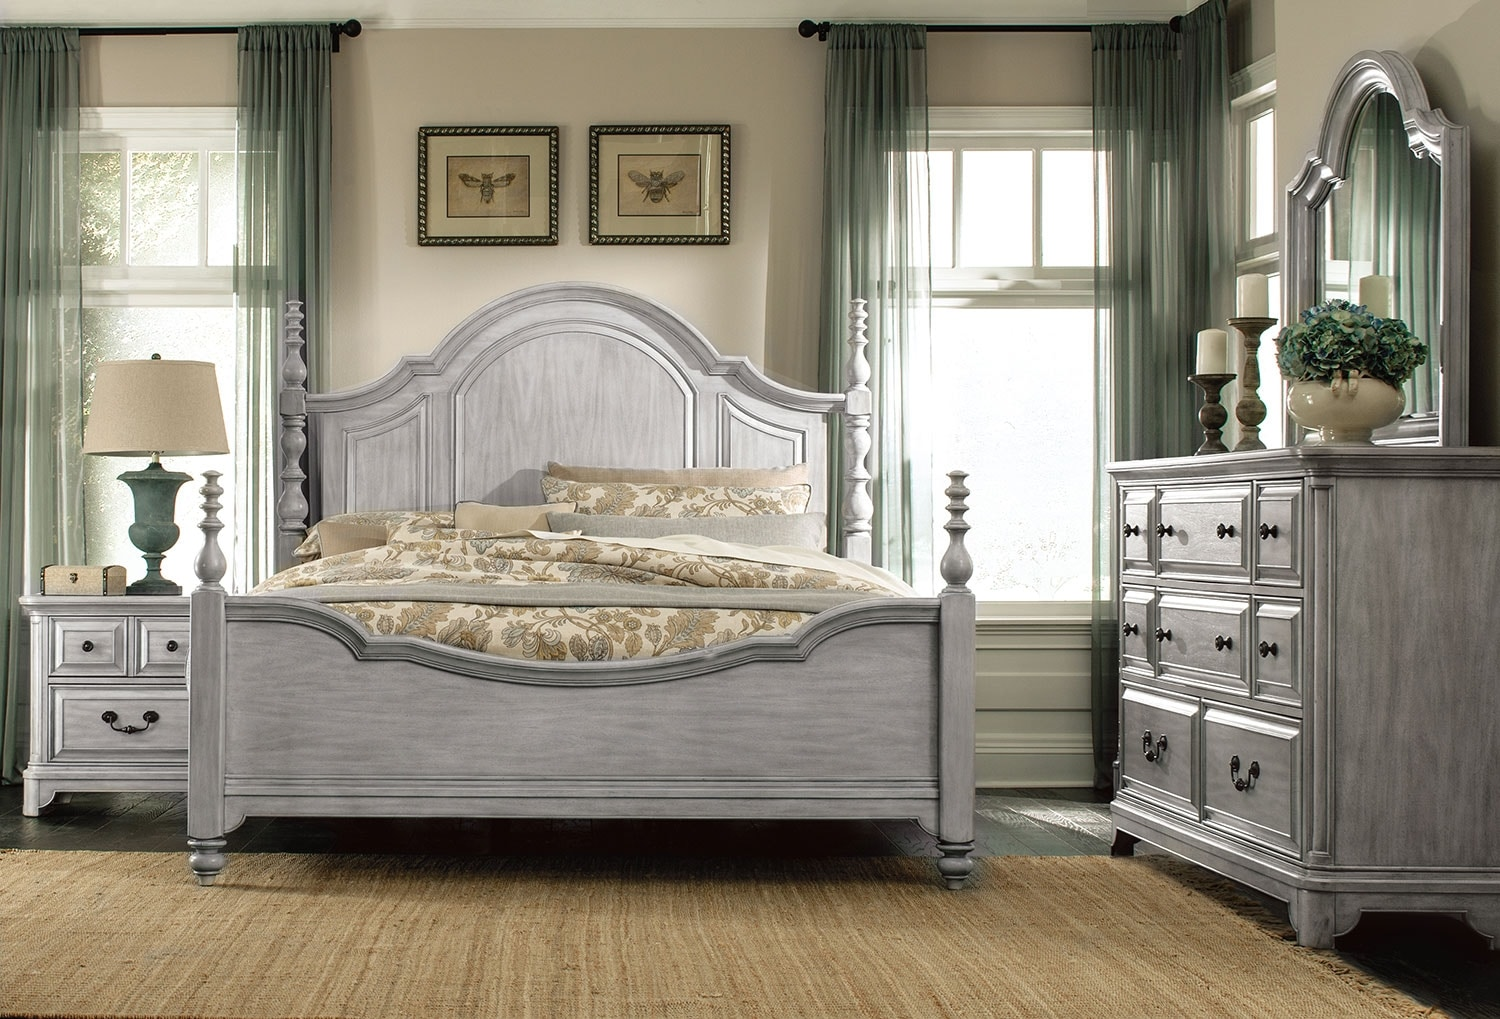 Tressa 5-Piece King Bedroom Set - Weathered Grey